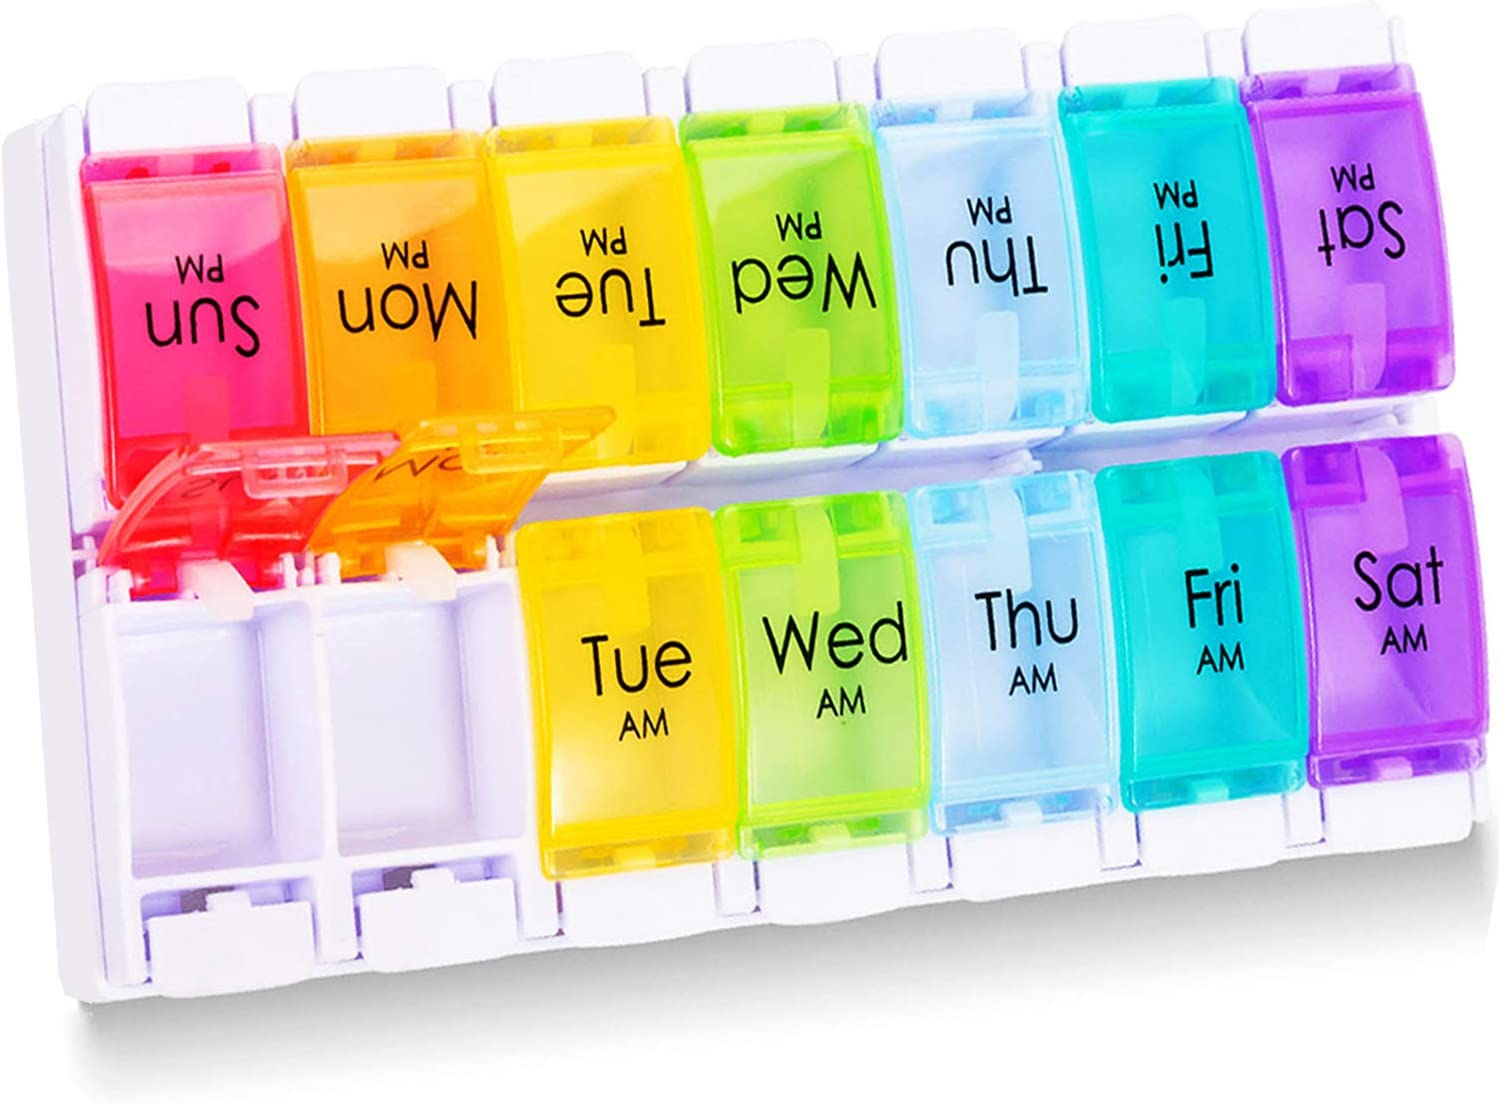 Betife 7 Day Pill Organizer AM PM, Easy Open Weekly Pill Box Case 2 Times a Day, Large Capacity 7 Day Pill Box Twice a Day, Push Button Daily Medicine Organizer for Pills/Vitamins/Fish Oils/Supplement